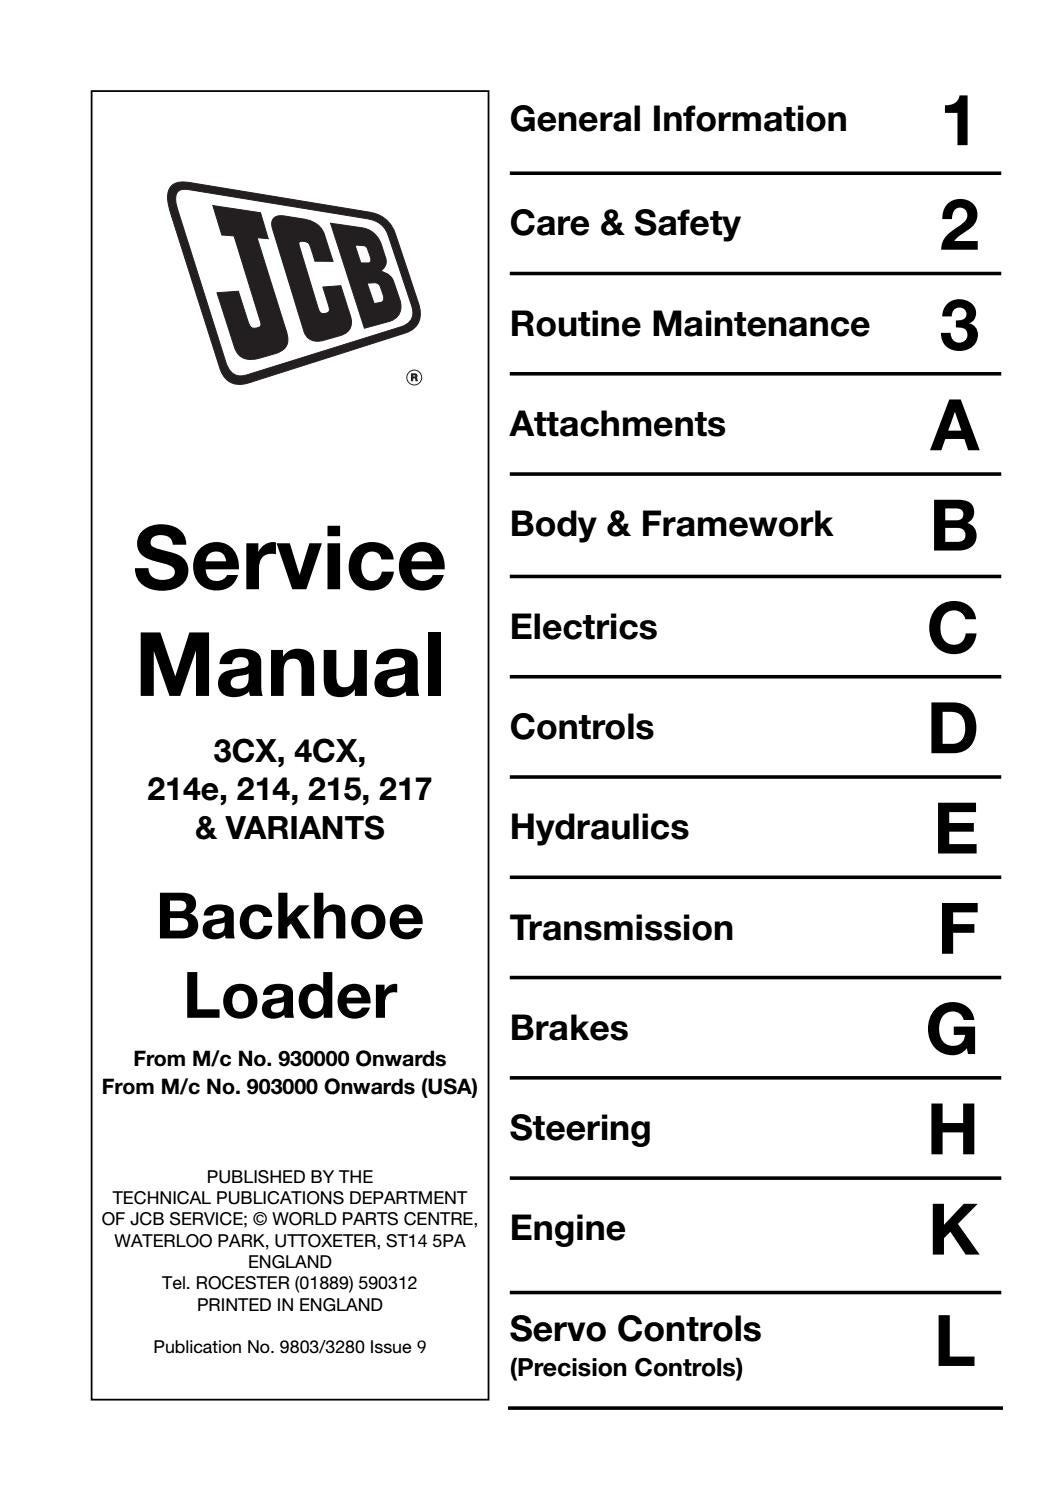 Jcb 214 Loader Backhoe Wiring Diagram - Wiring Diagram Article Jcb Backhoe Starter Wiring Diagram on